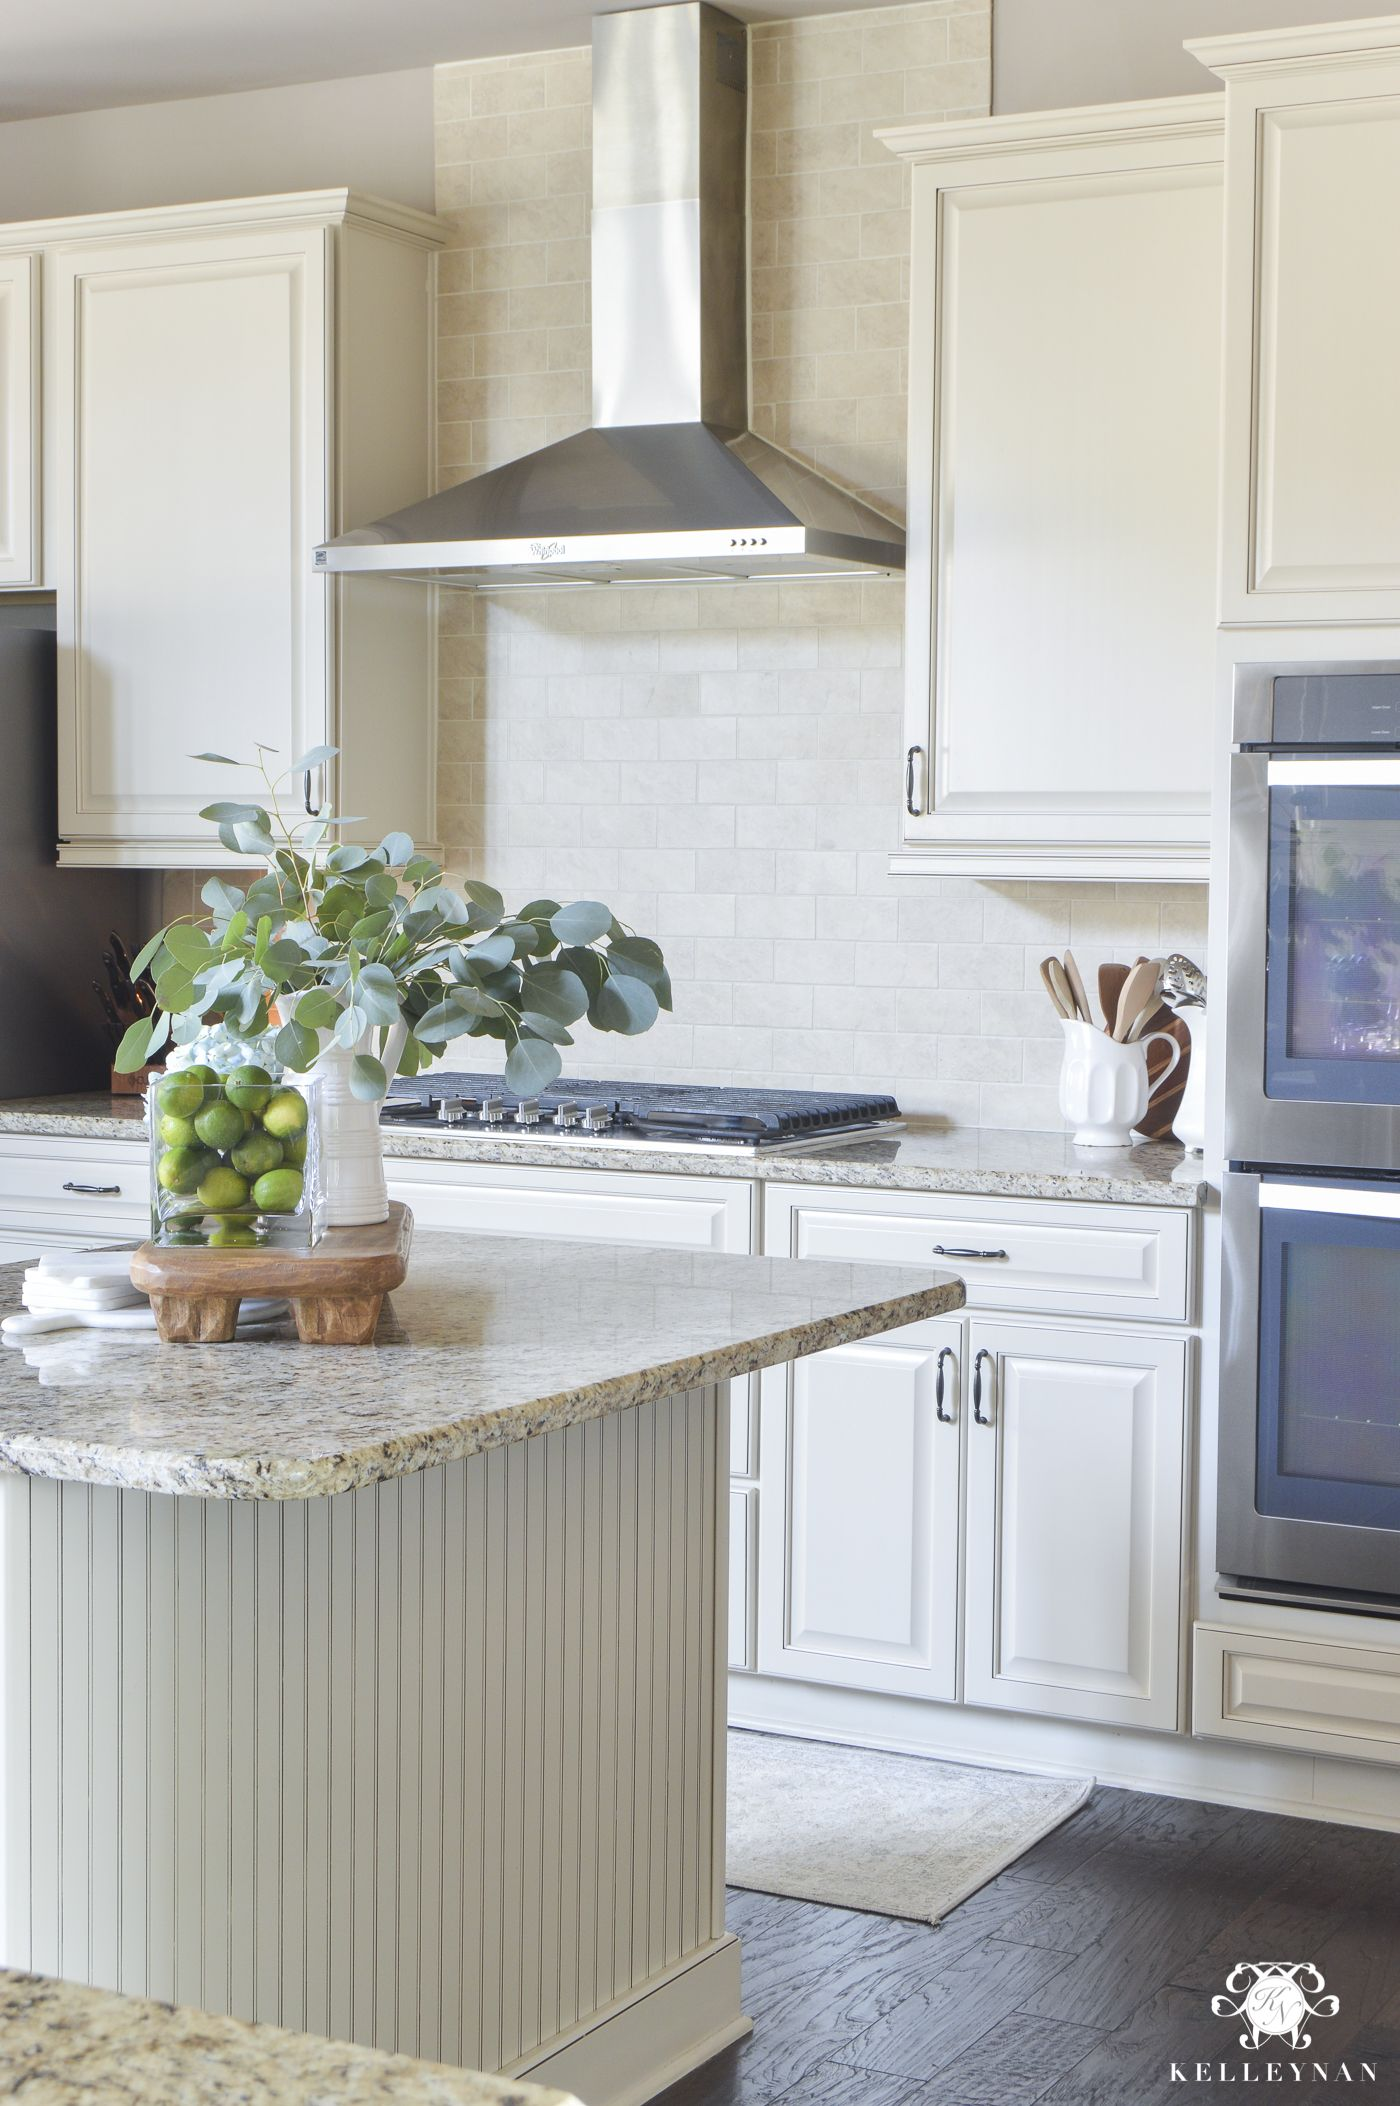 Kitchens For Less Kitchen Chair With Arms Three Ways To Bring Spring The Than 10 Kelley Nan